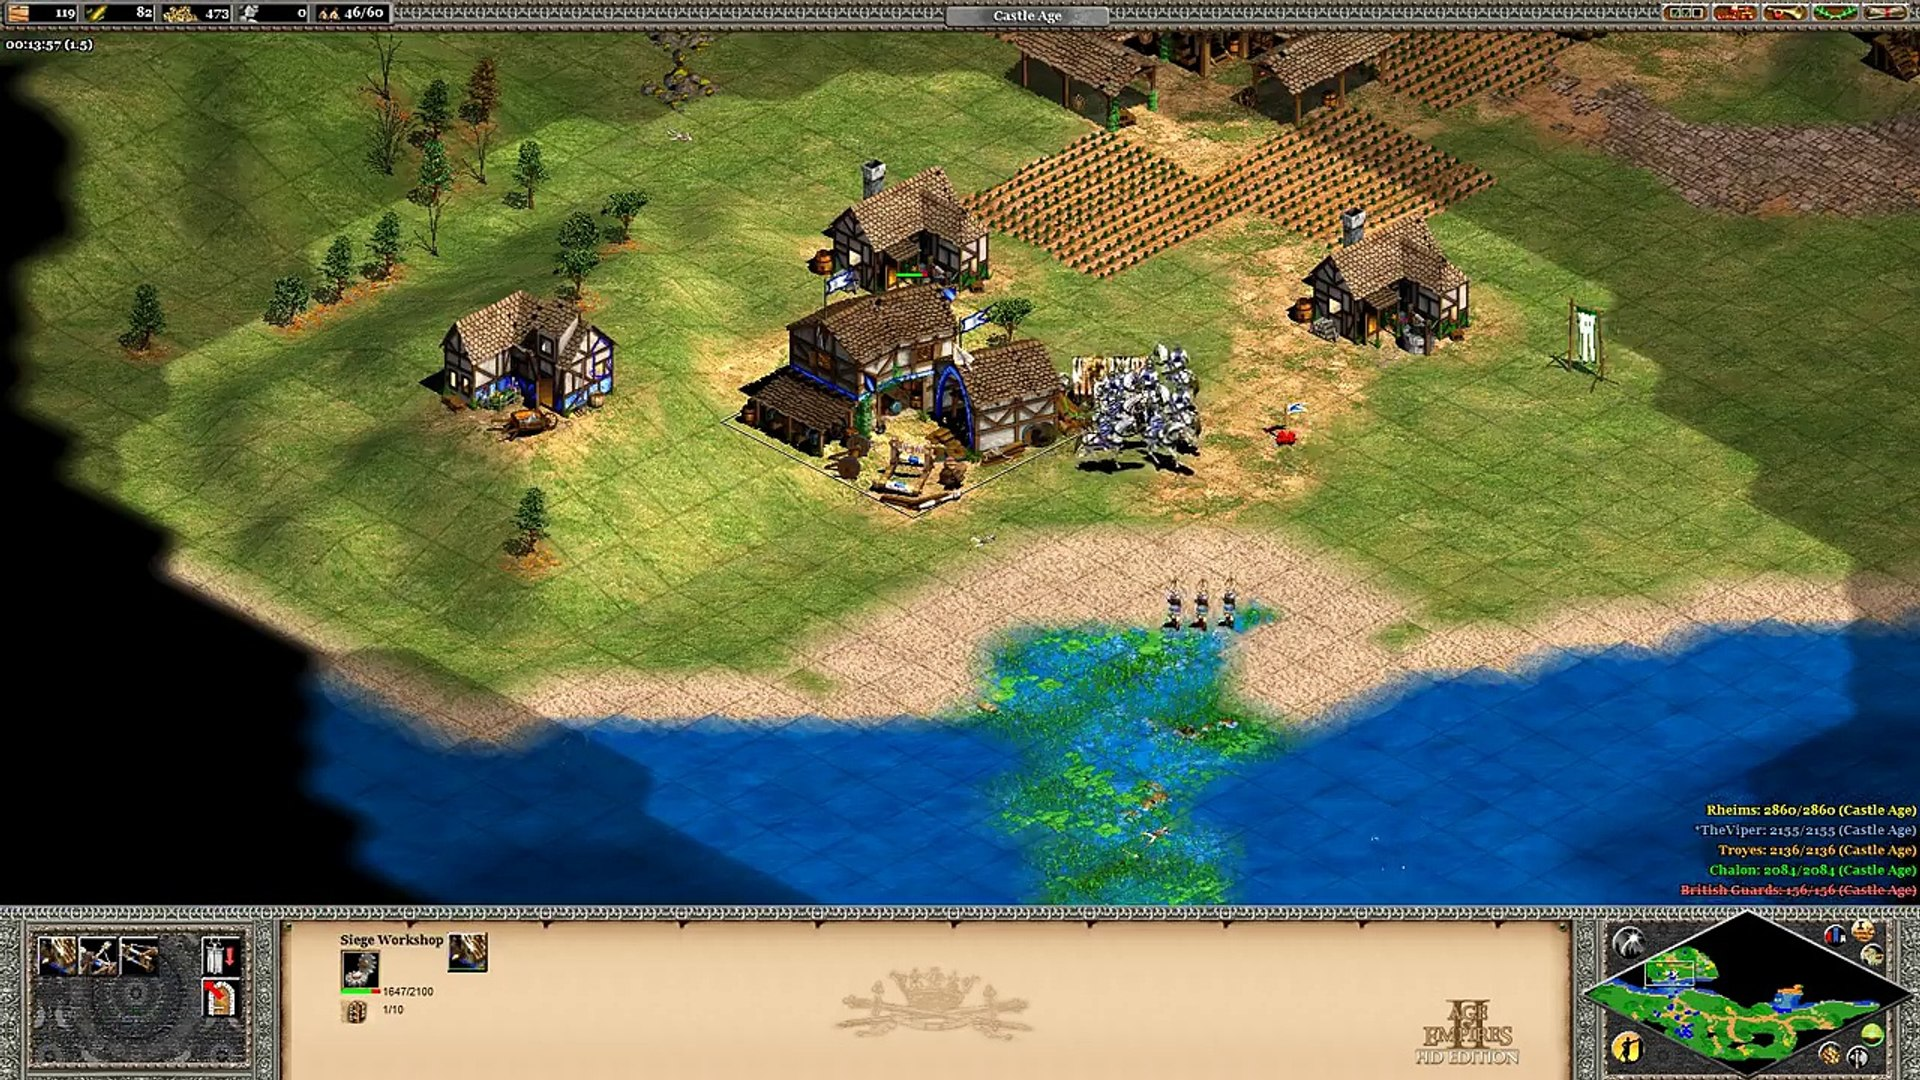 Age of Empires II: Age of Kings Campaign 2.4 Joan of Arc: The Rising